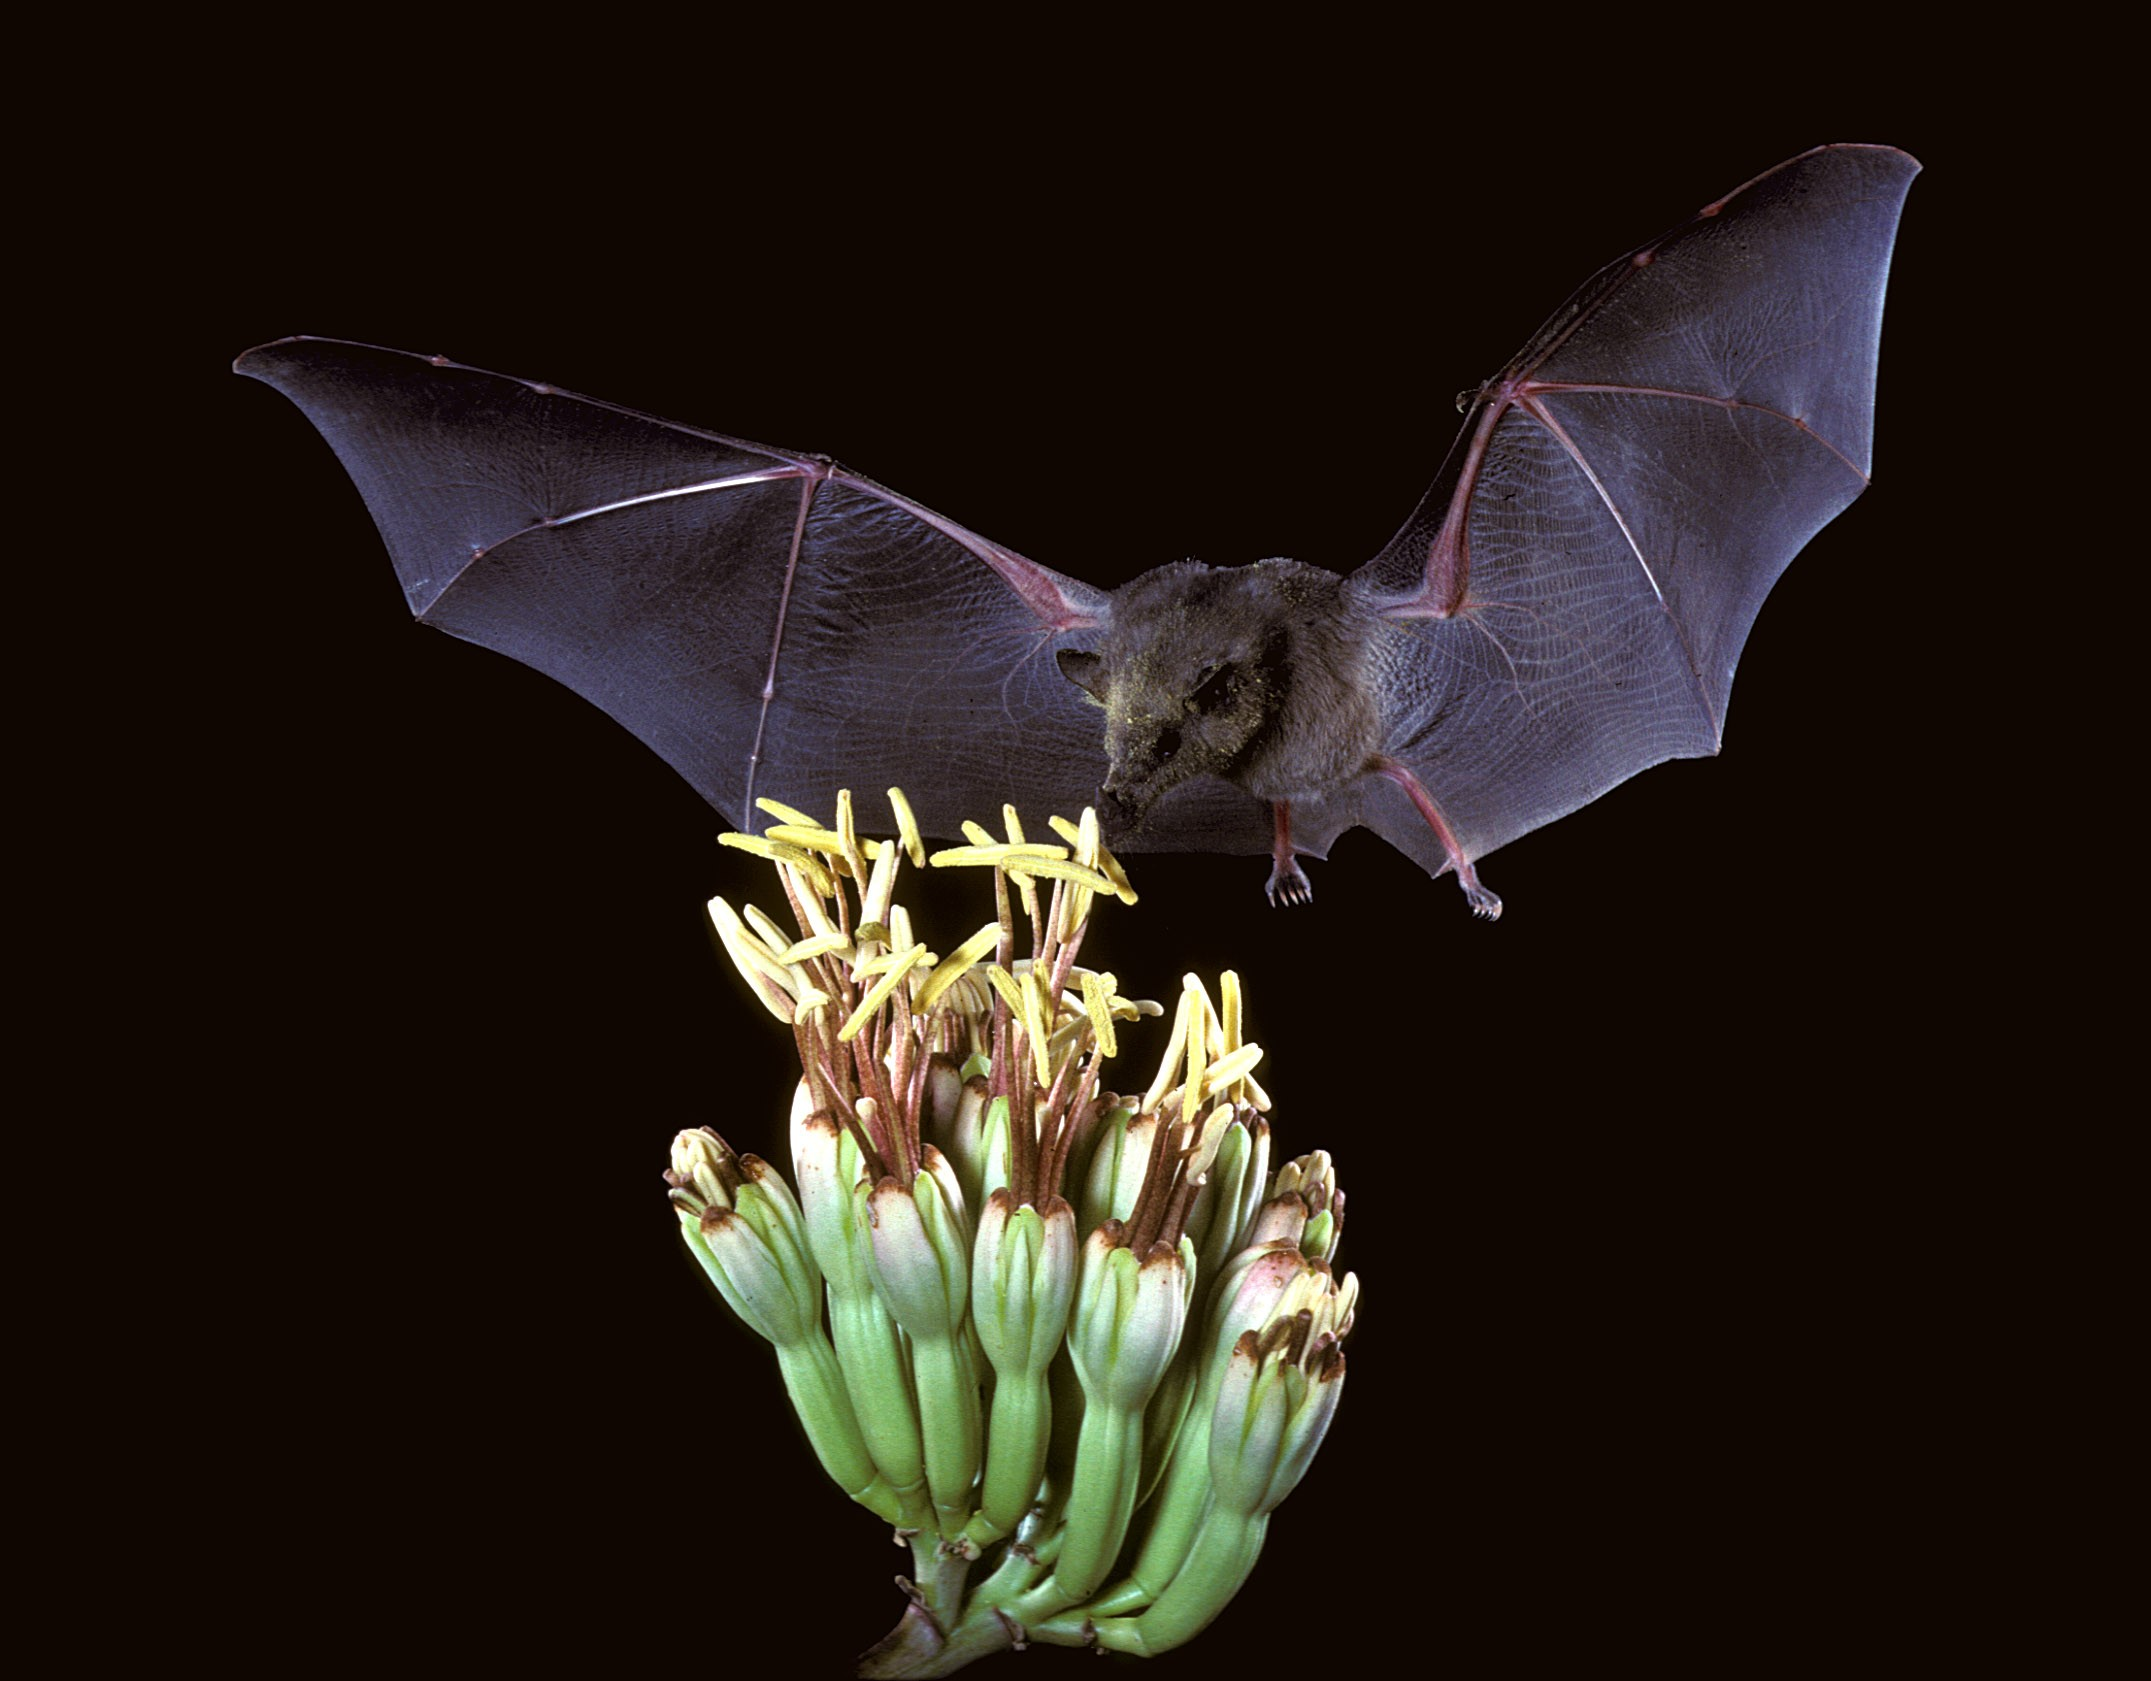 Mexican long-tongued bat (Choeronycteris mexicana) drinking from a cactus. Image: USFWS